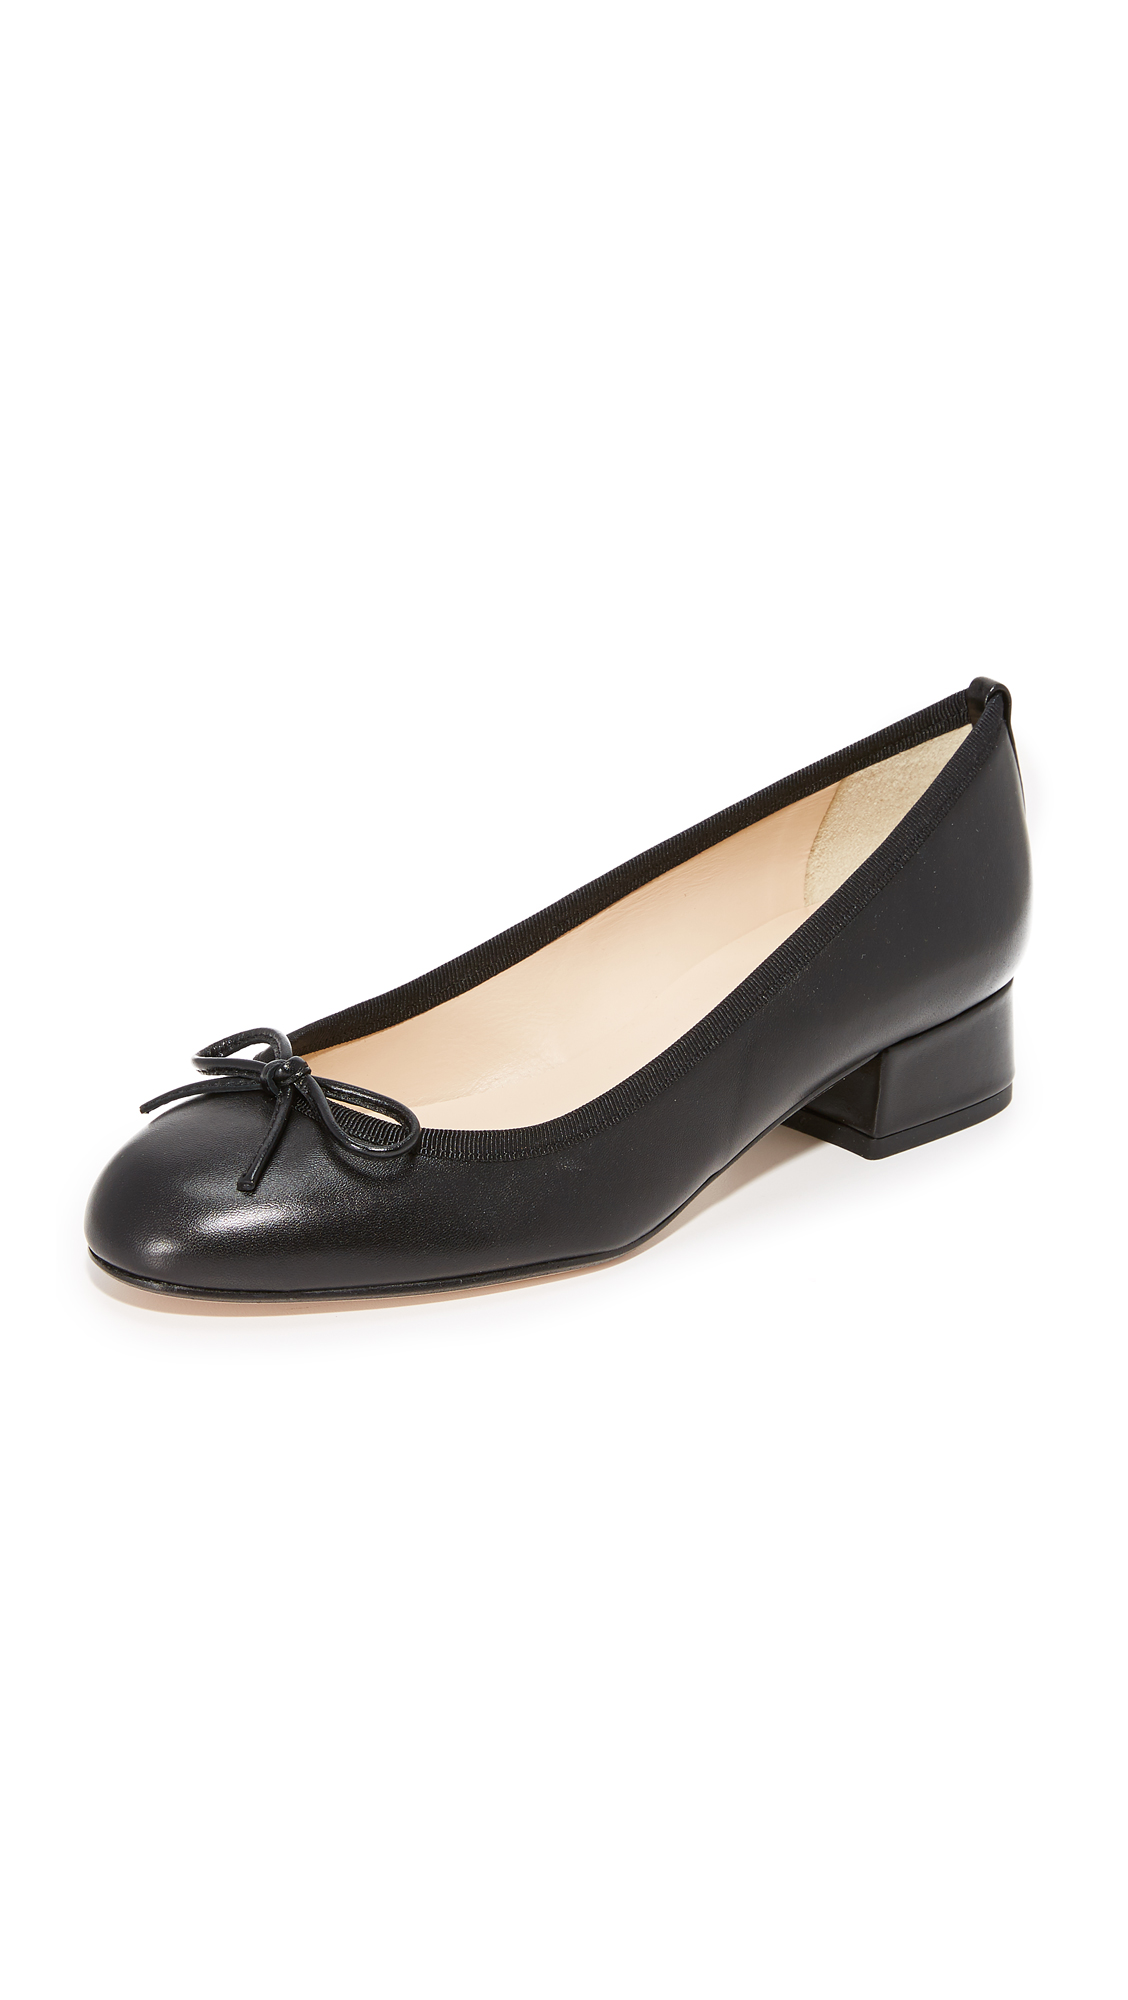 L.K. Bennett Danielle Pumps - Black